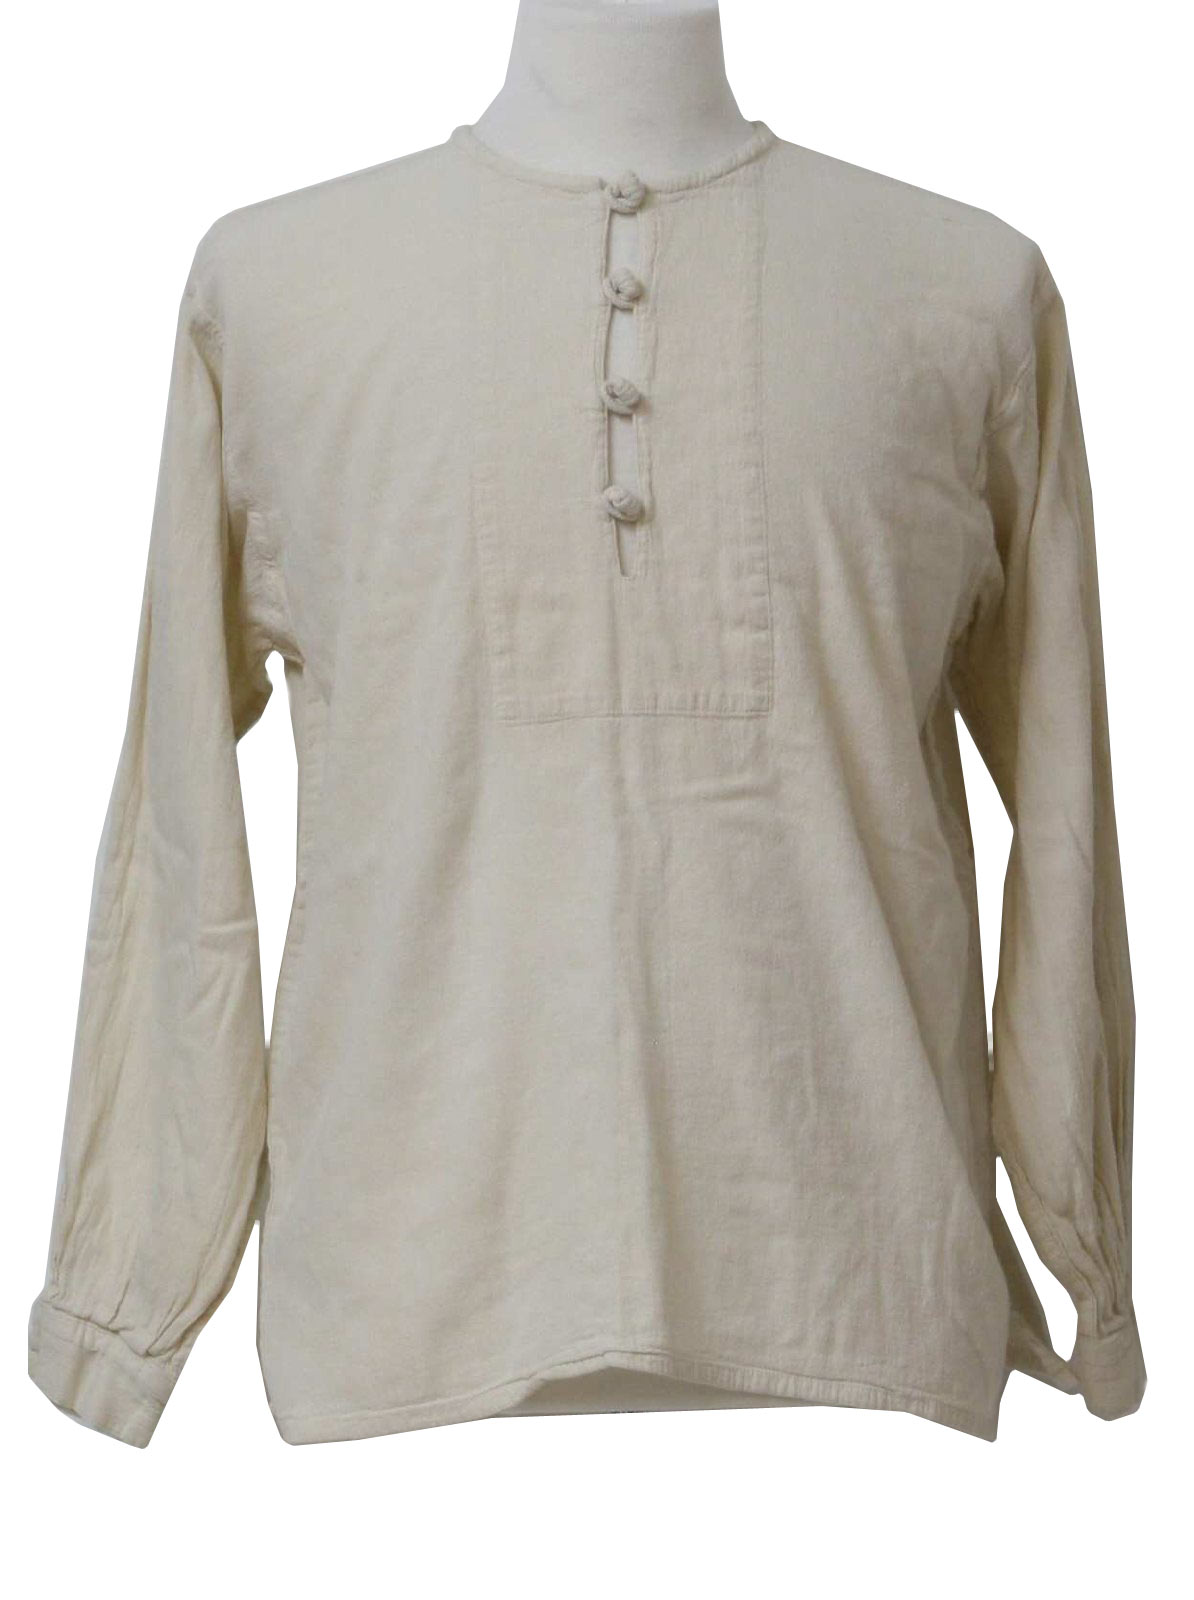 Ladies formal white shirts